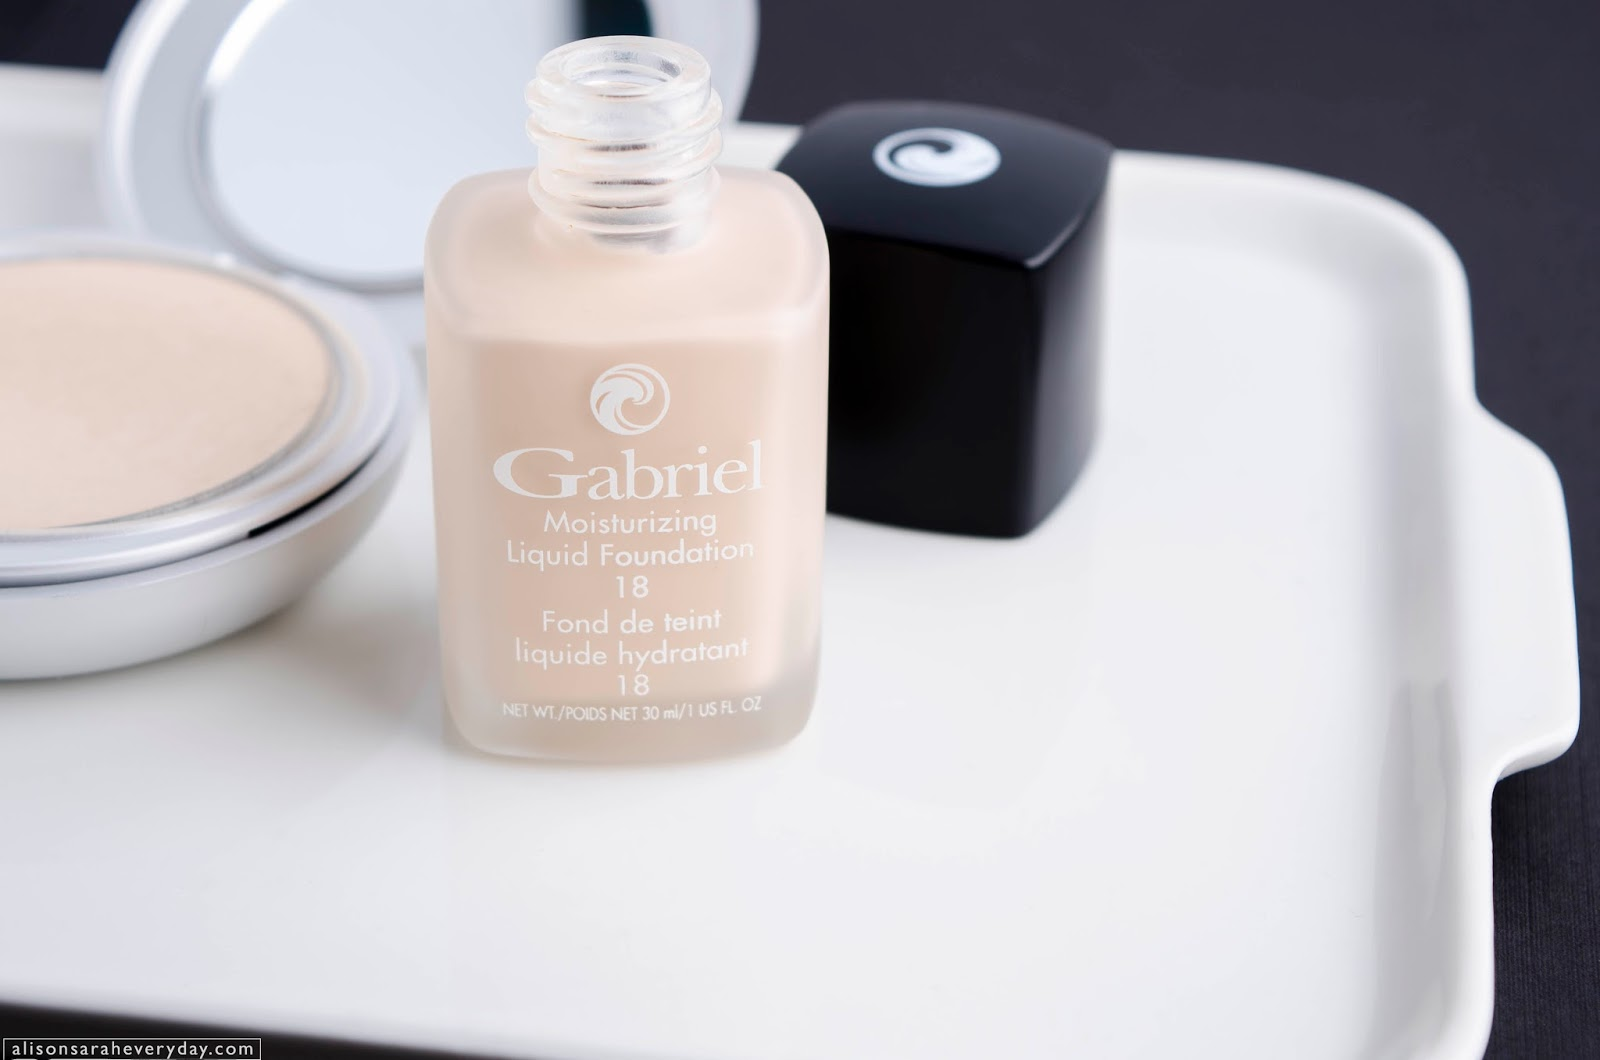 Gabriel Cosmetics Liquid Foundation and Zuzu Luxe Powder Foundation on a white dish